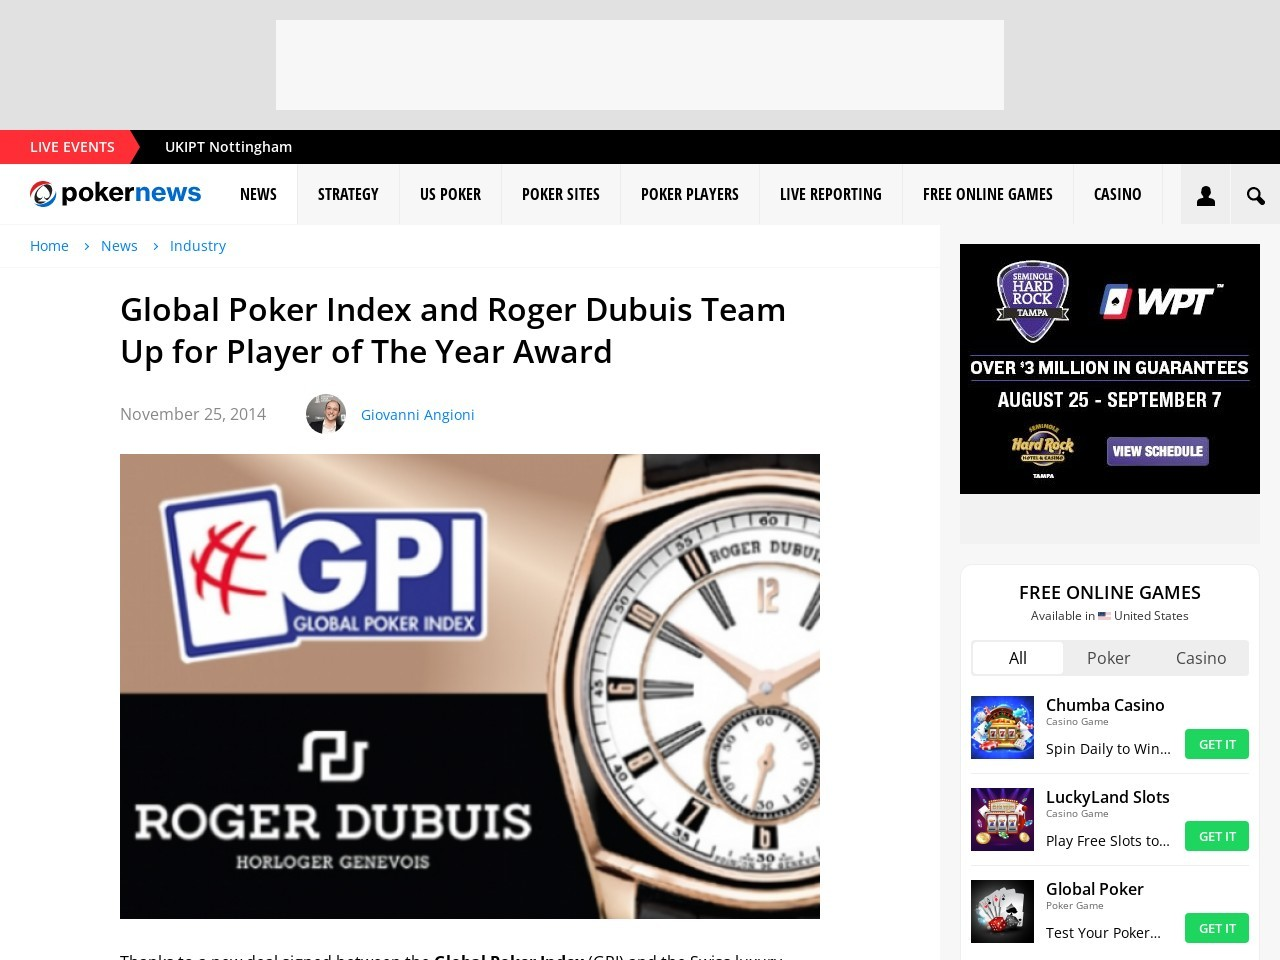 Global Poker Index and Roger Dubuis Team Up for Player of The Year Award